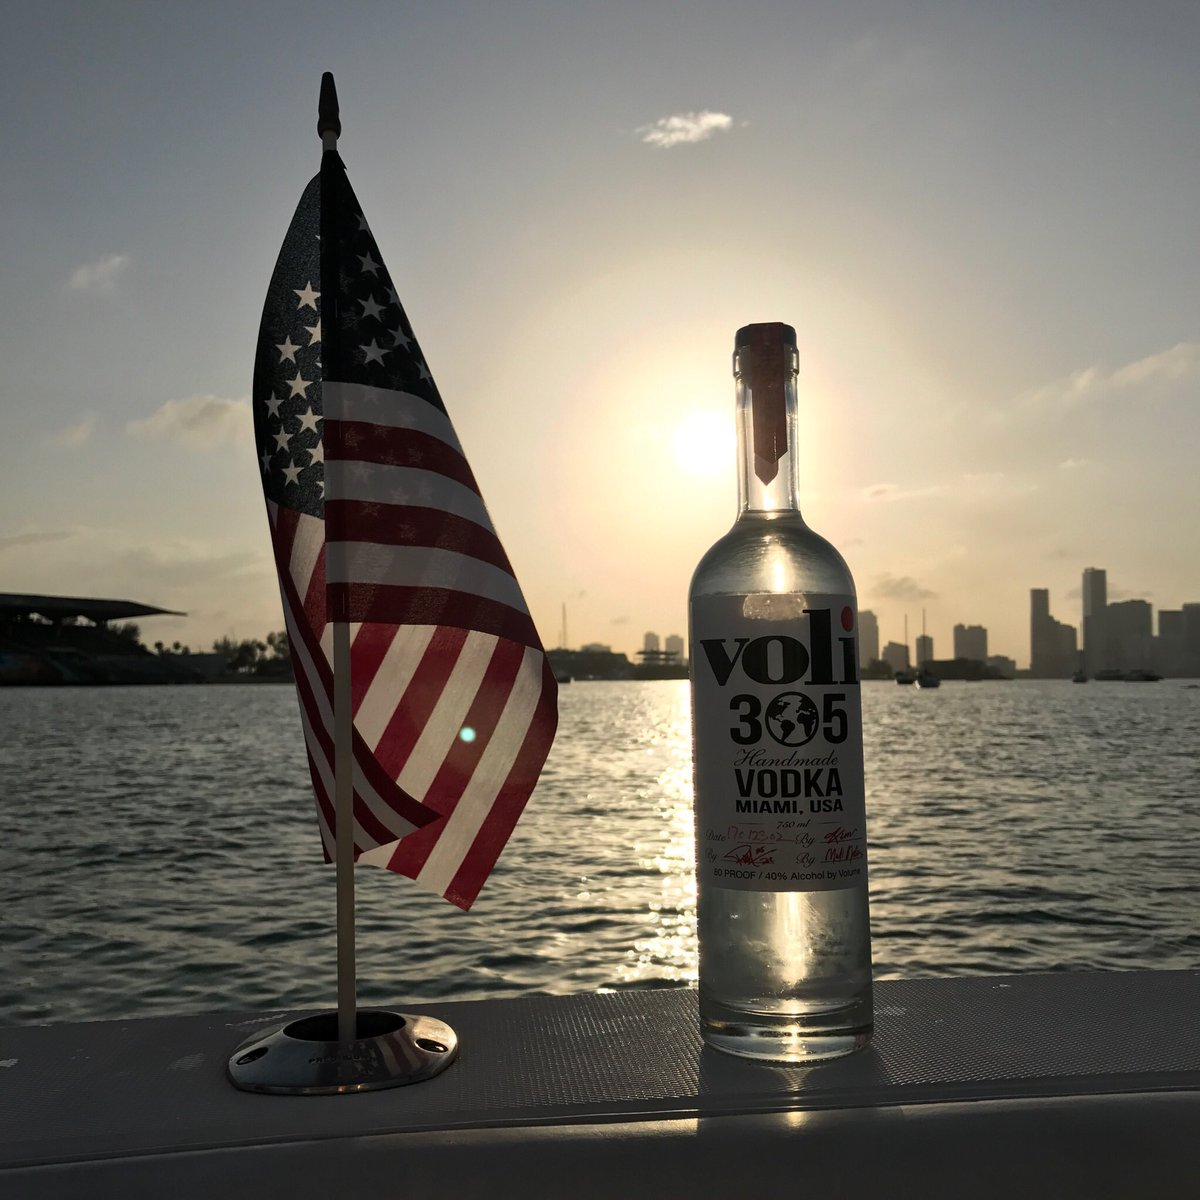 Immigrant parents first generation Cuban American to the American dream from Voli to @Voli305Vodka Dale! https://t.co/RTOtnOfv1f